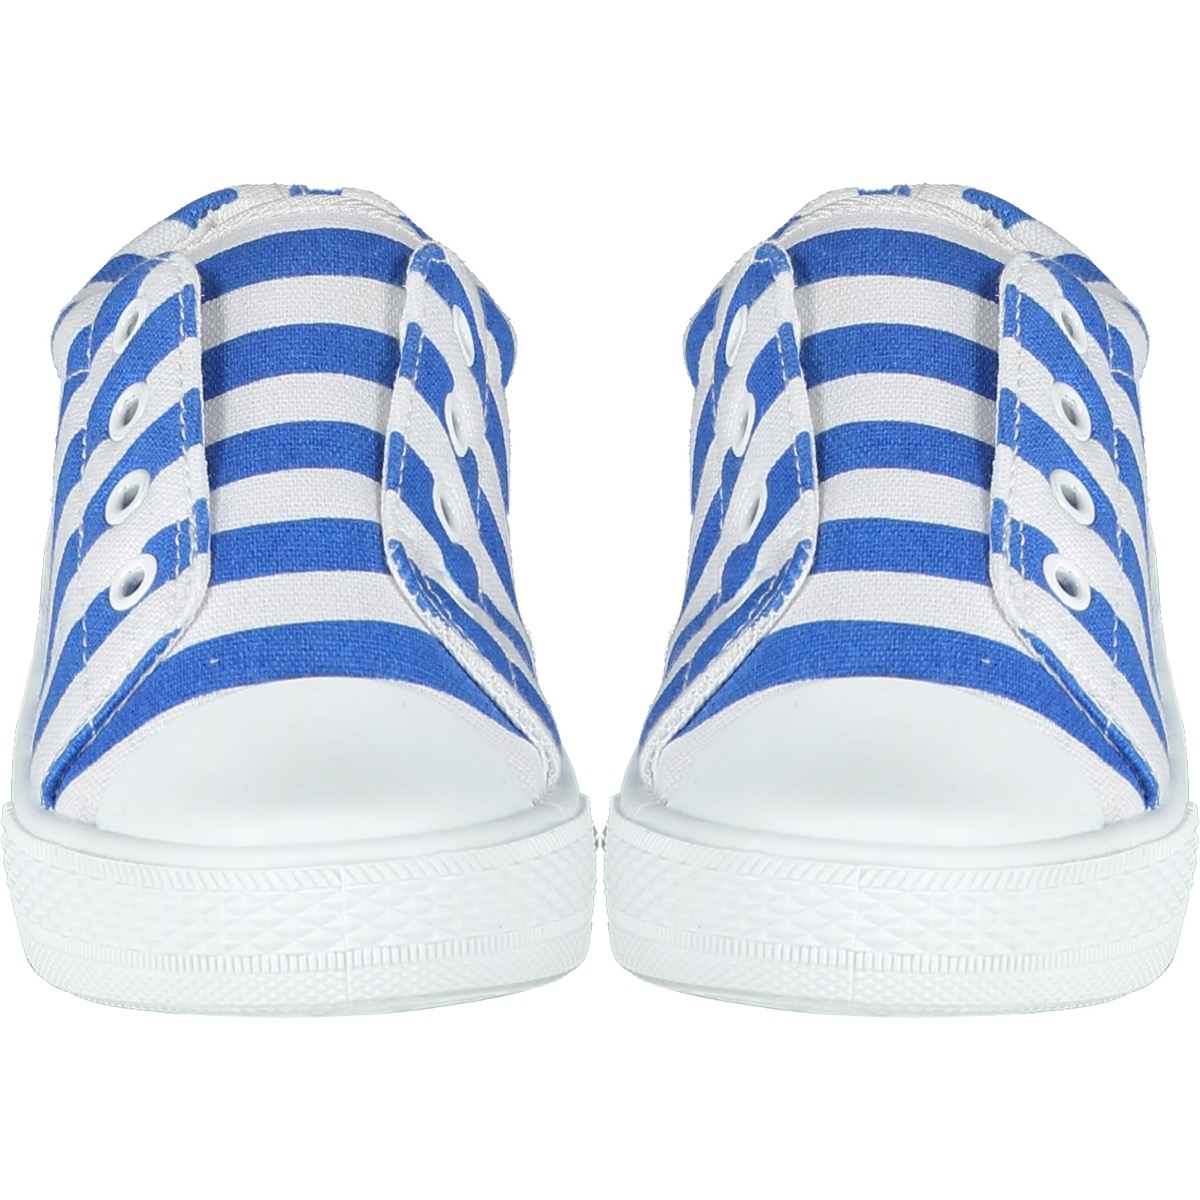 A'Dee Blue Stripe Laceless Trainers S215101